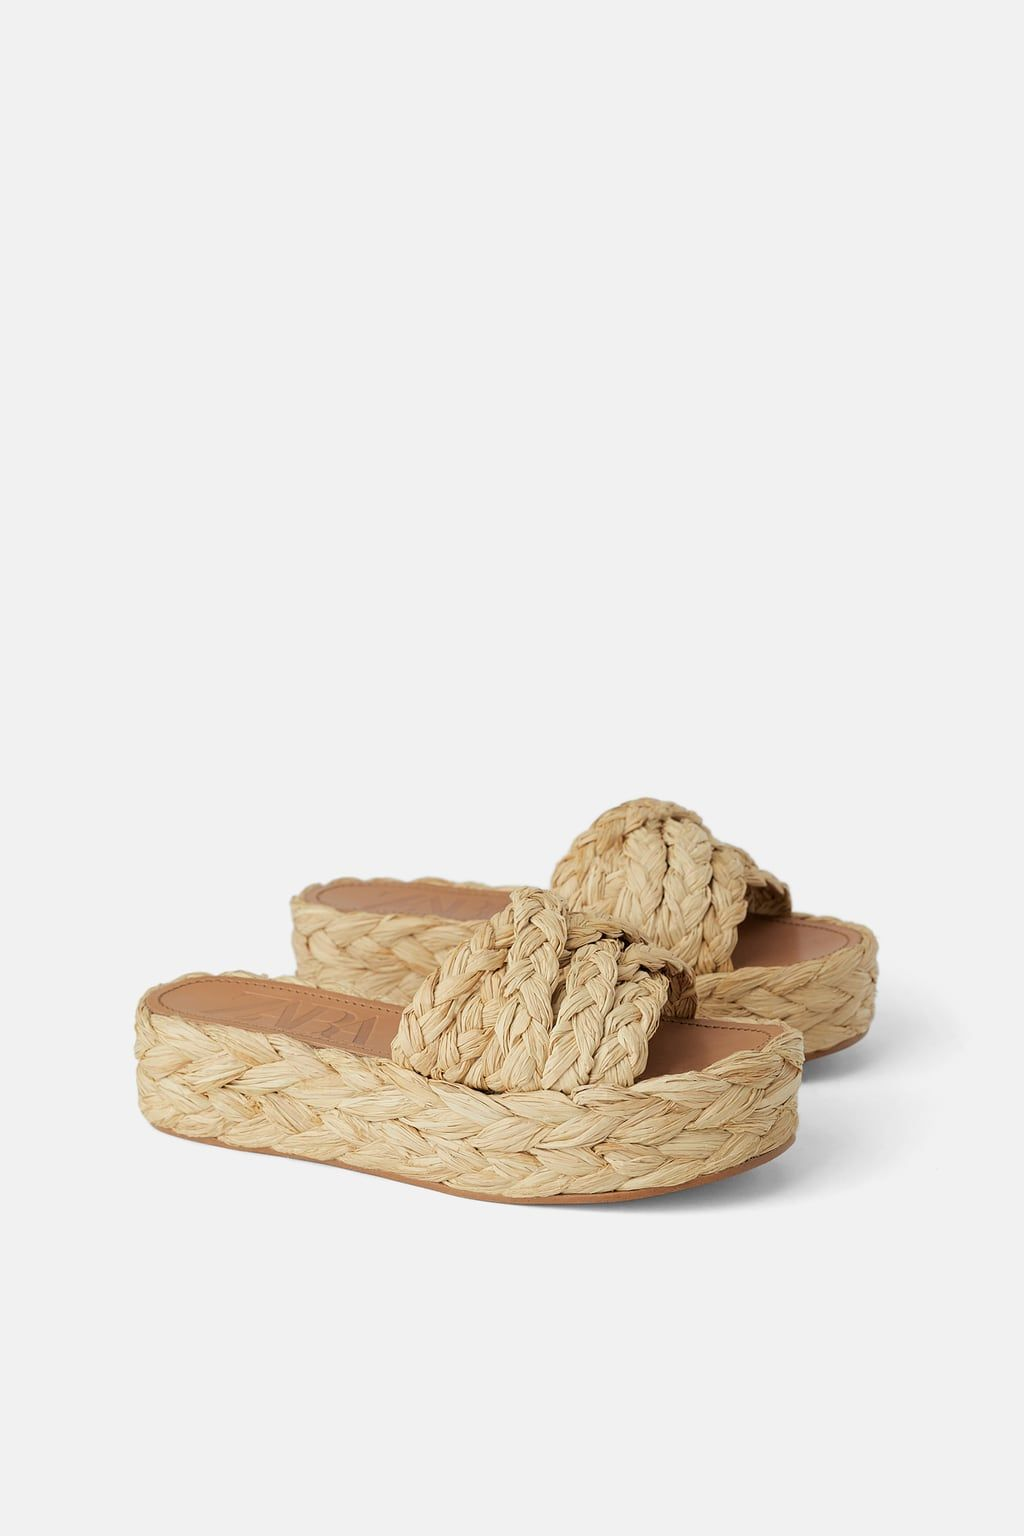 97b6e396c0 Natural raffia platform wedges in 2019 | Shoes: sandals / slides ...